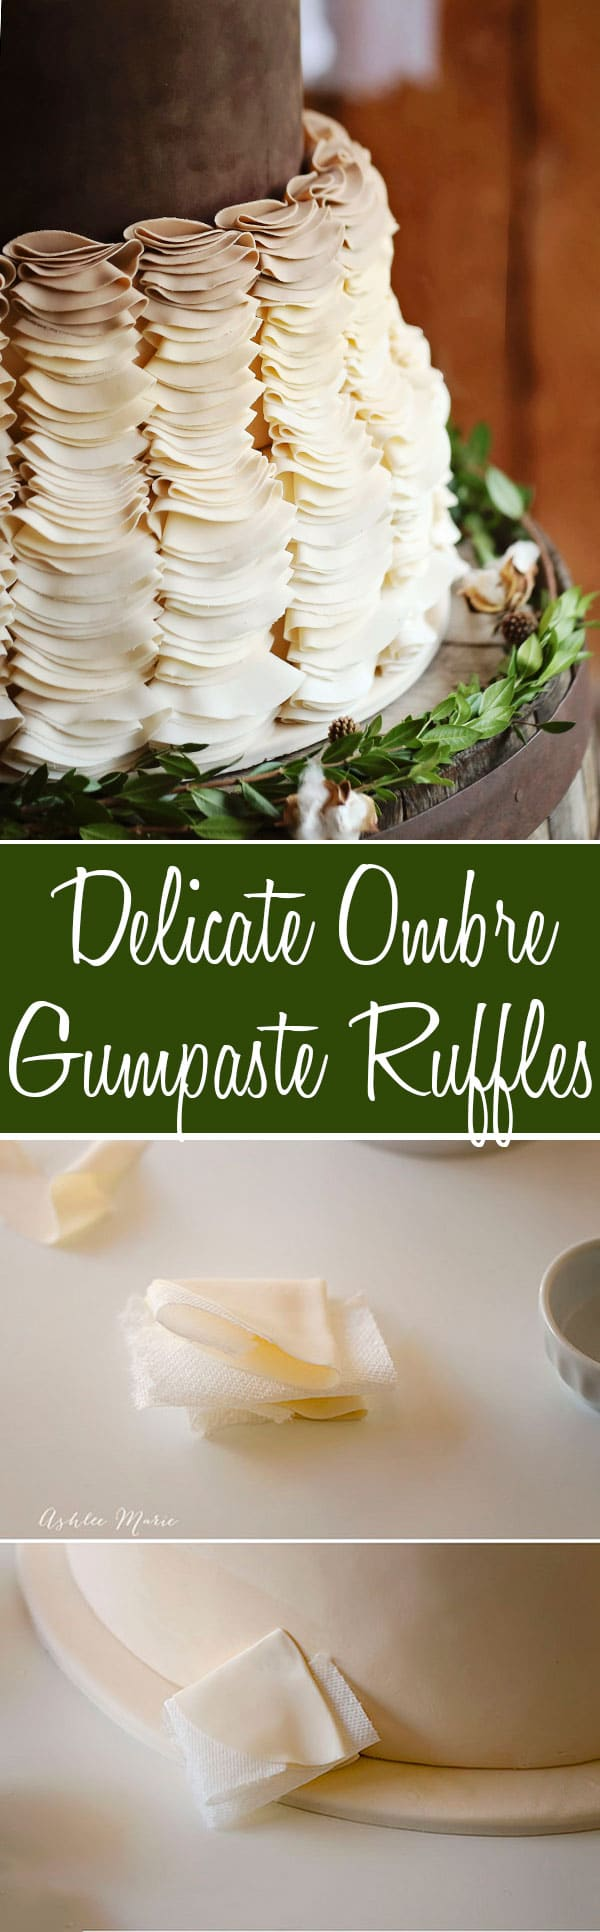 a full tutorial for how to make these delicate gumpaste, ombre ruffles